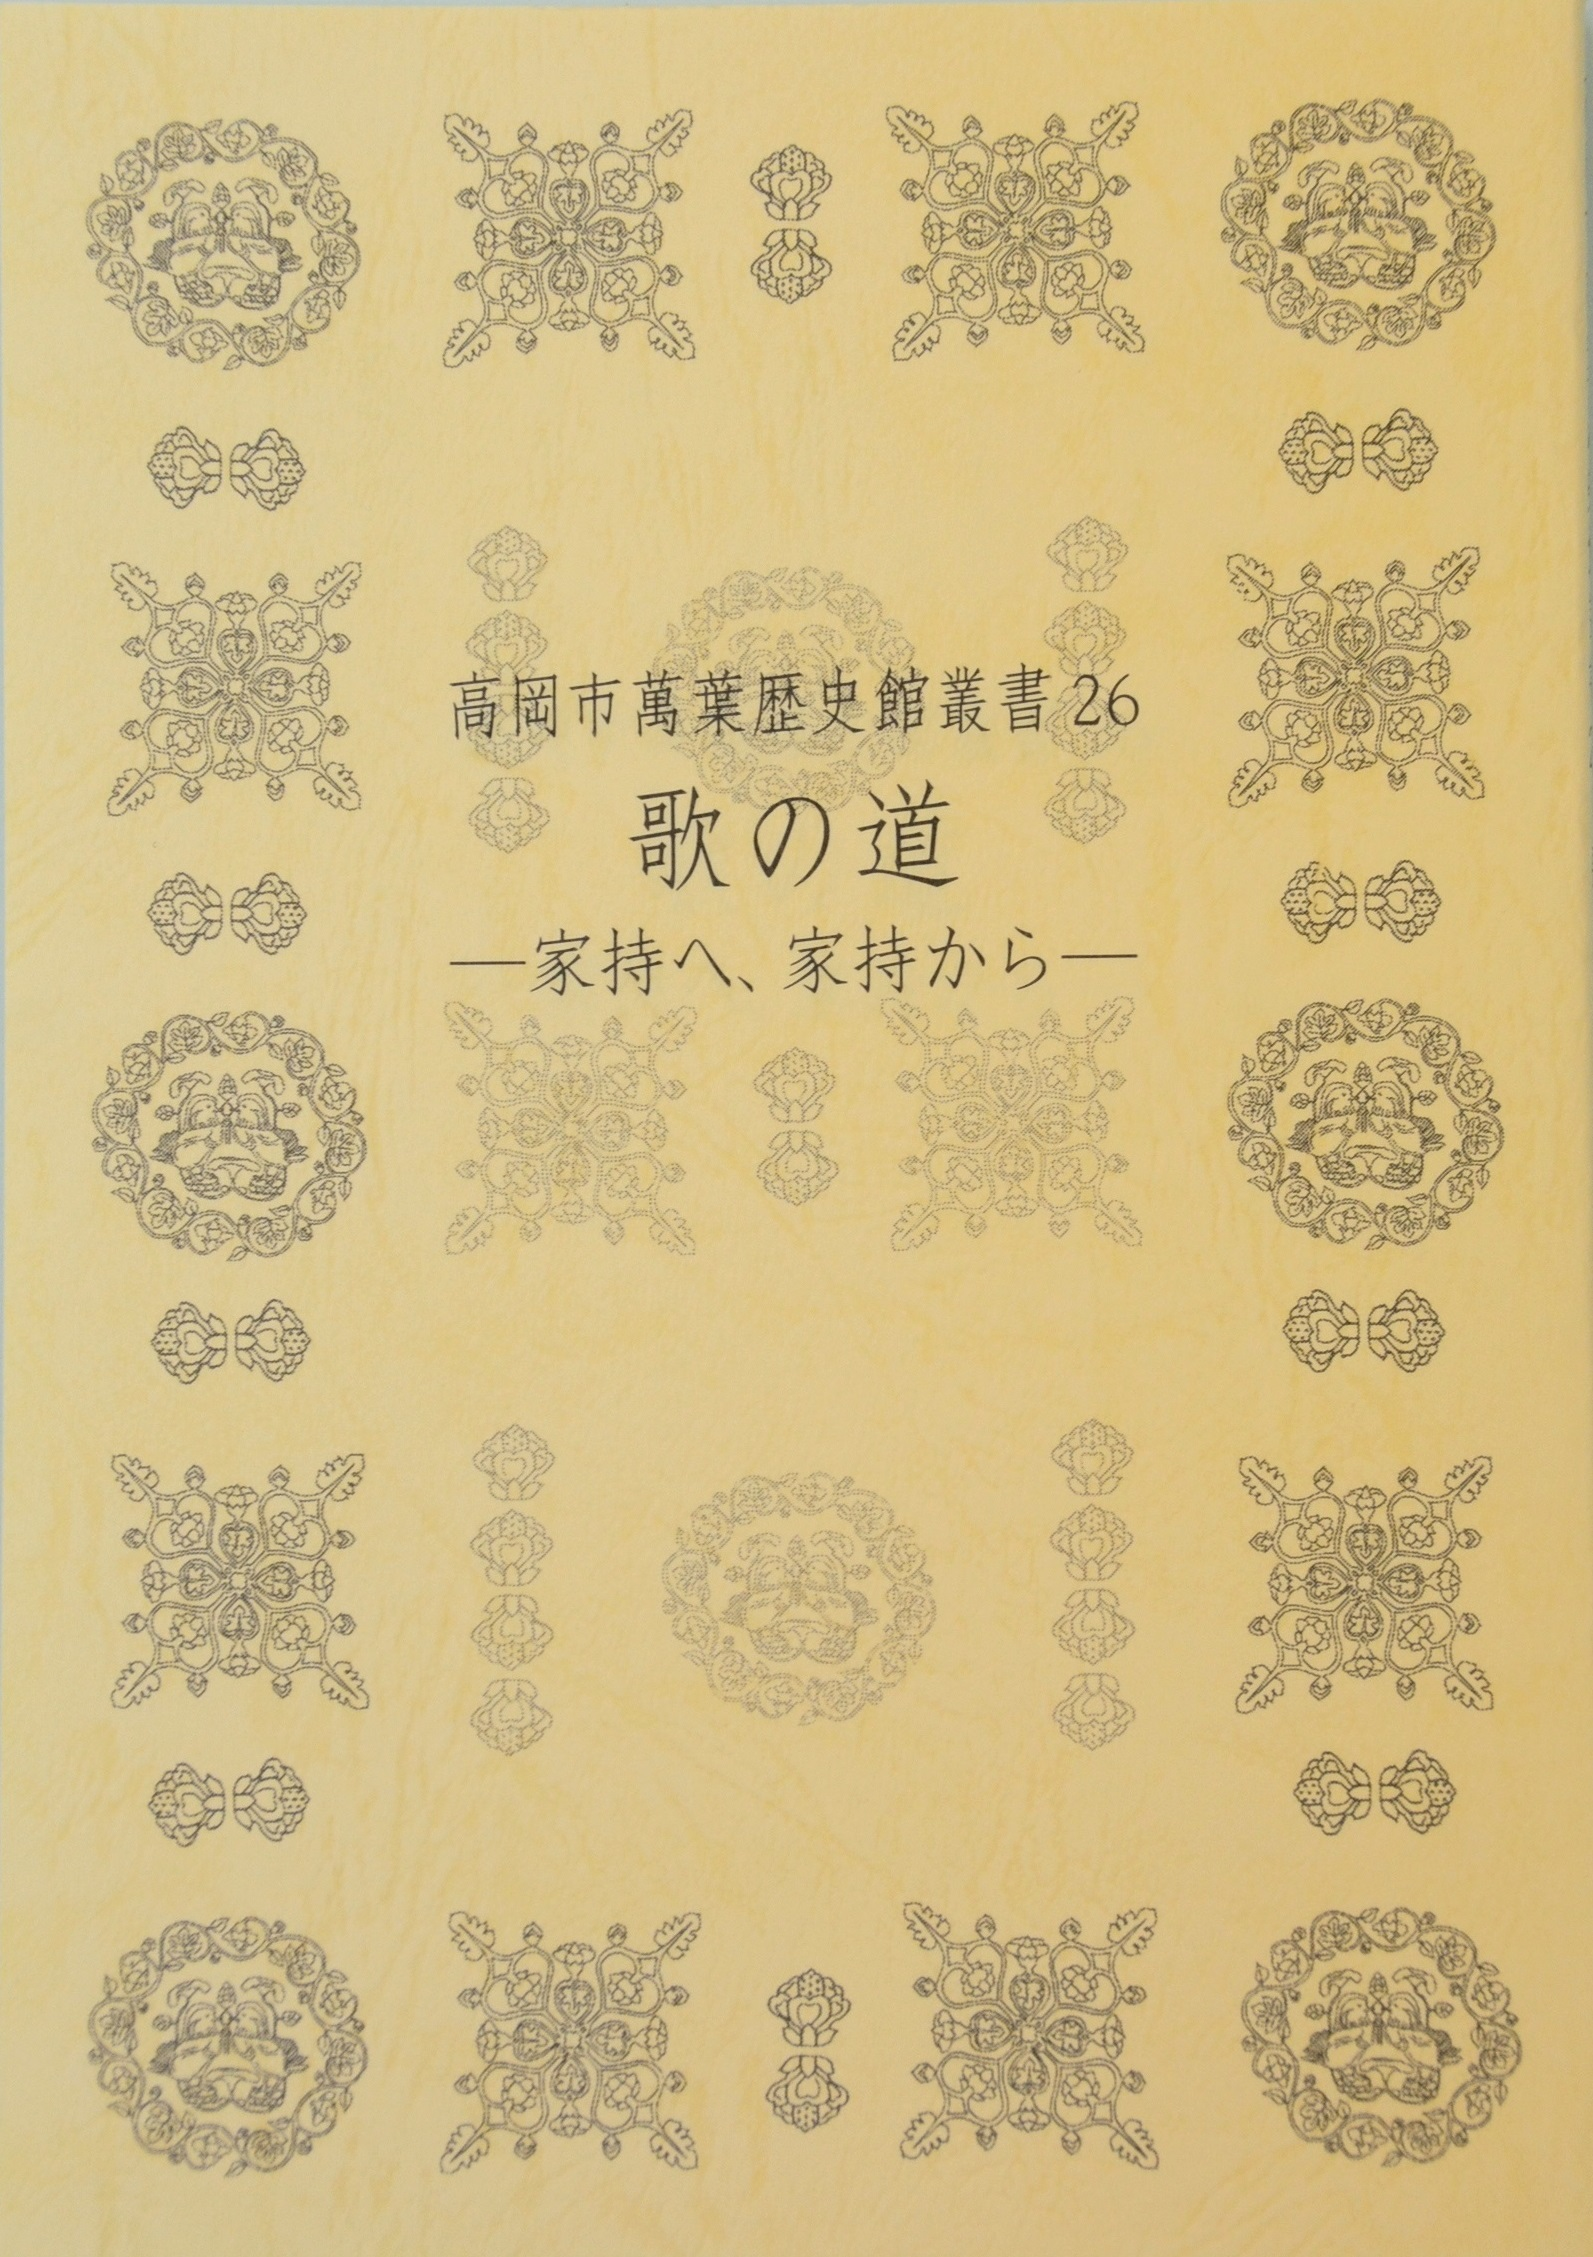 Bright golden yellow cover with decorative elements